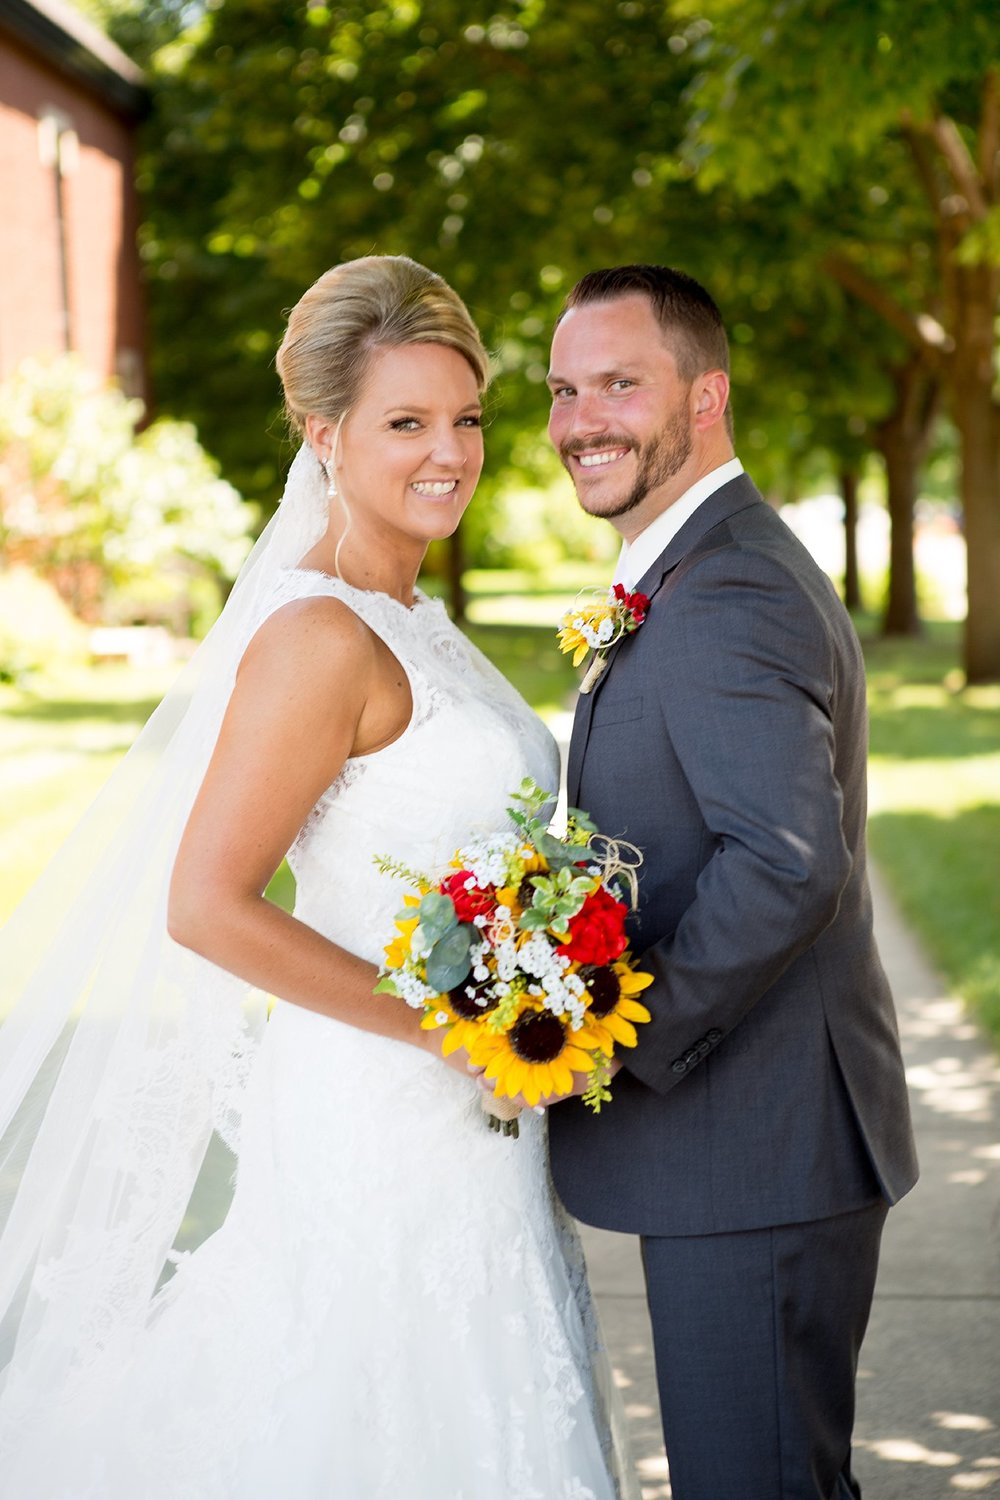 4Alice Hq Photography | Emilie + Tyler Southern MN Wedding.jpg